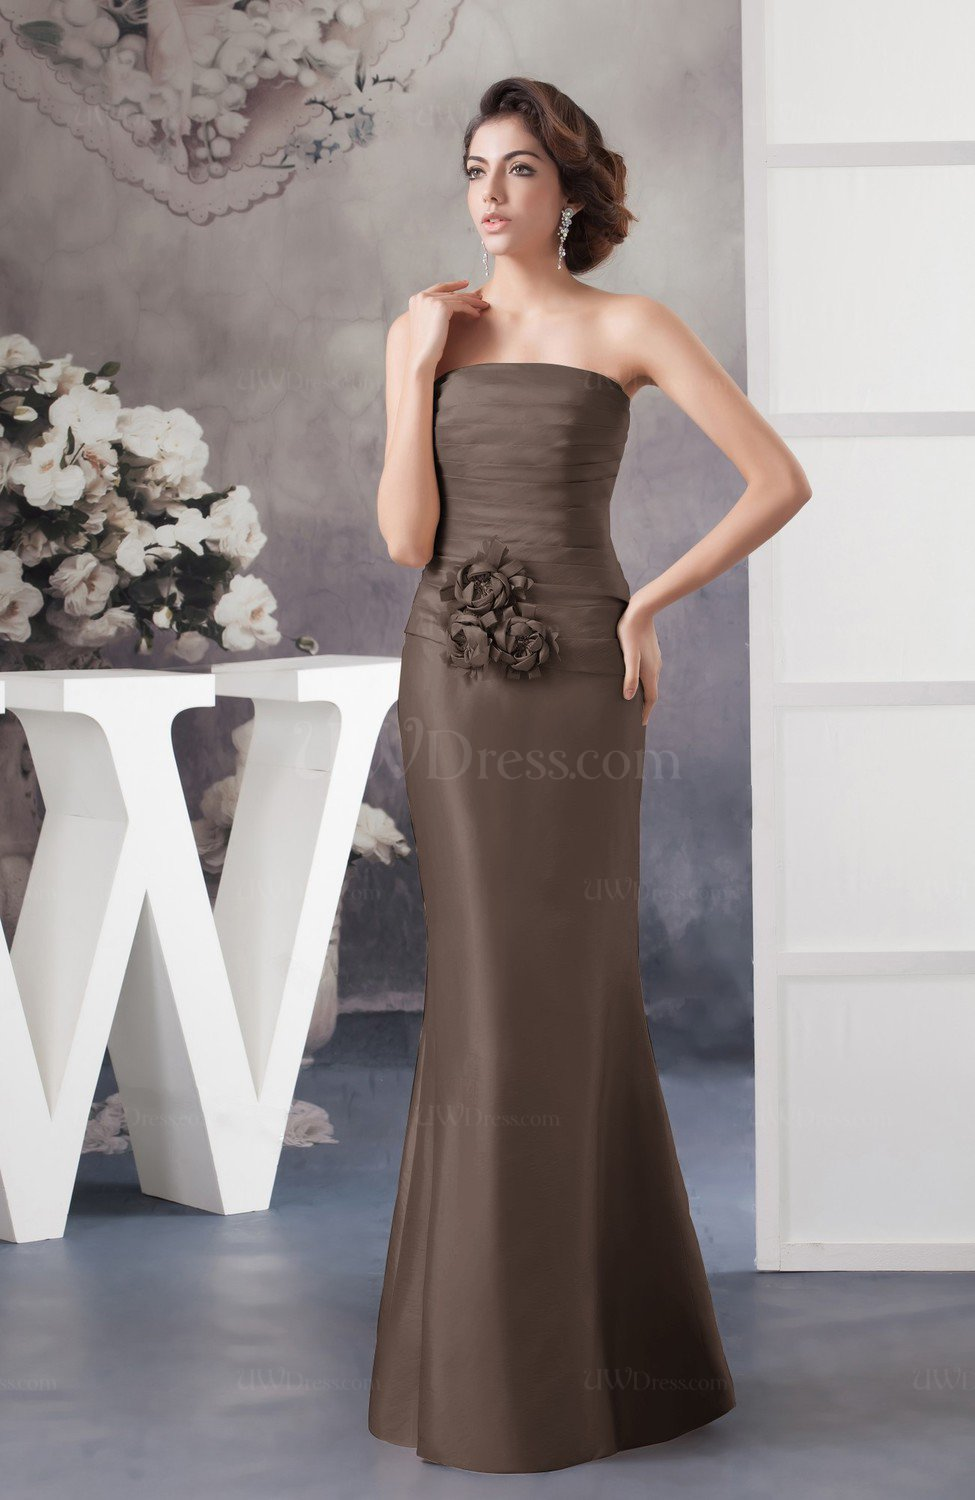 e9d3e609d7 Chestnut Brown Affordable Bridesmaid Dress Inexpensive Taffeta Outdoor  Tight Classy Garden (Style D86610)